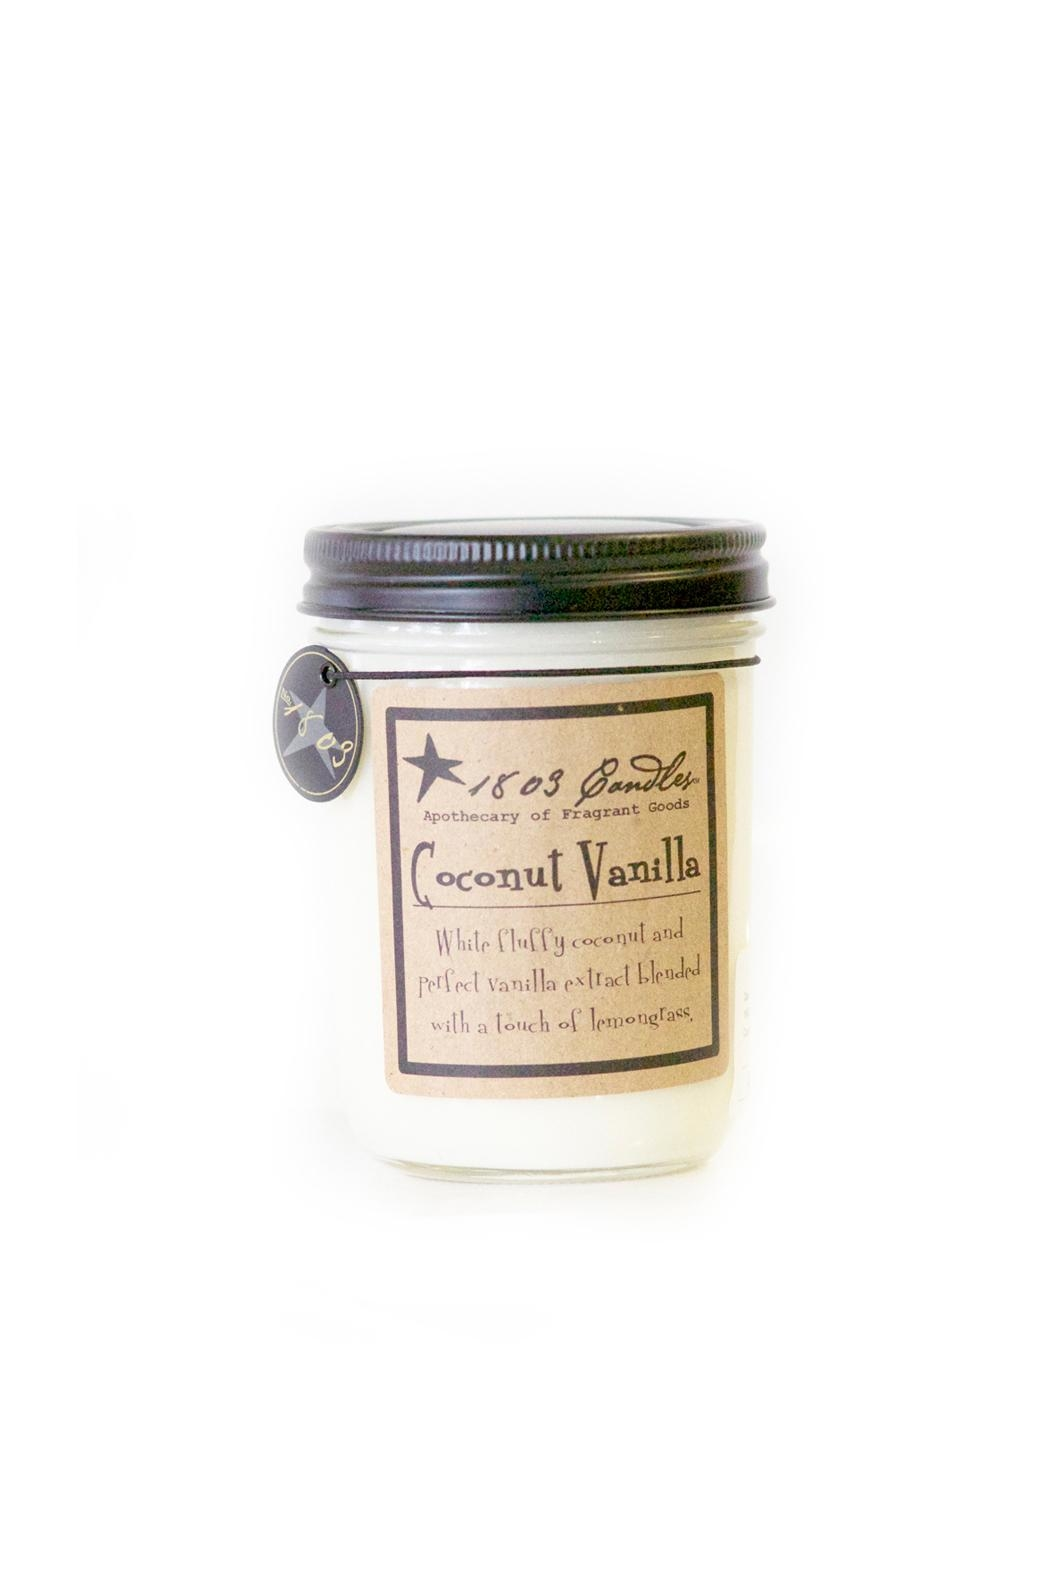 1803 Candles Coconut Vanilla Candle - Main Image